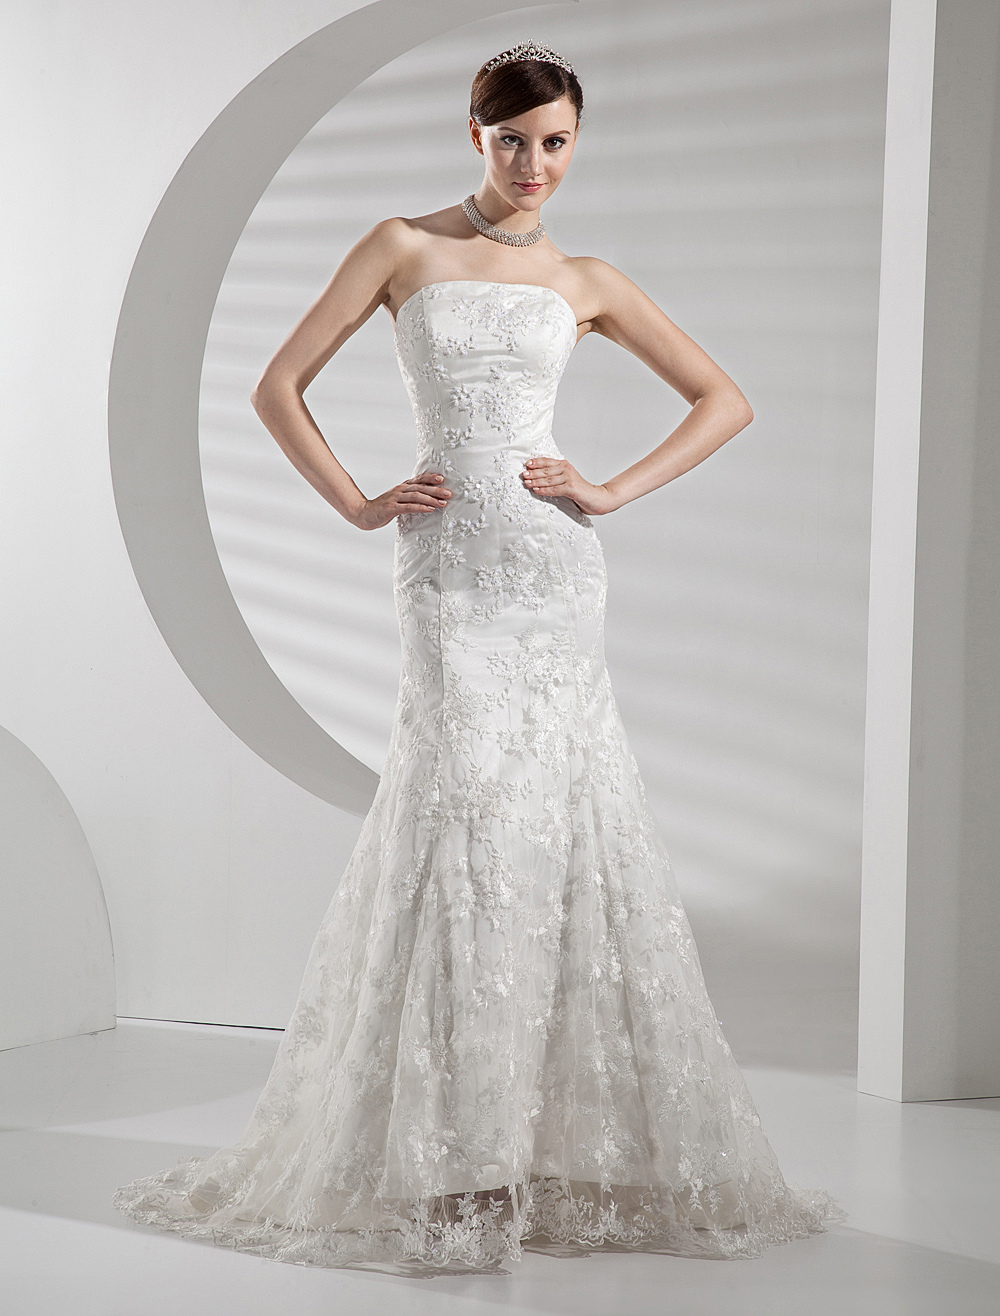 Lace Wedding Dresses Strapless Mermaid Bridal Gown Trumpet Beaded Bridal Dress With Train